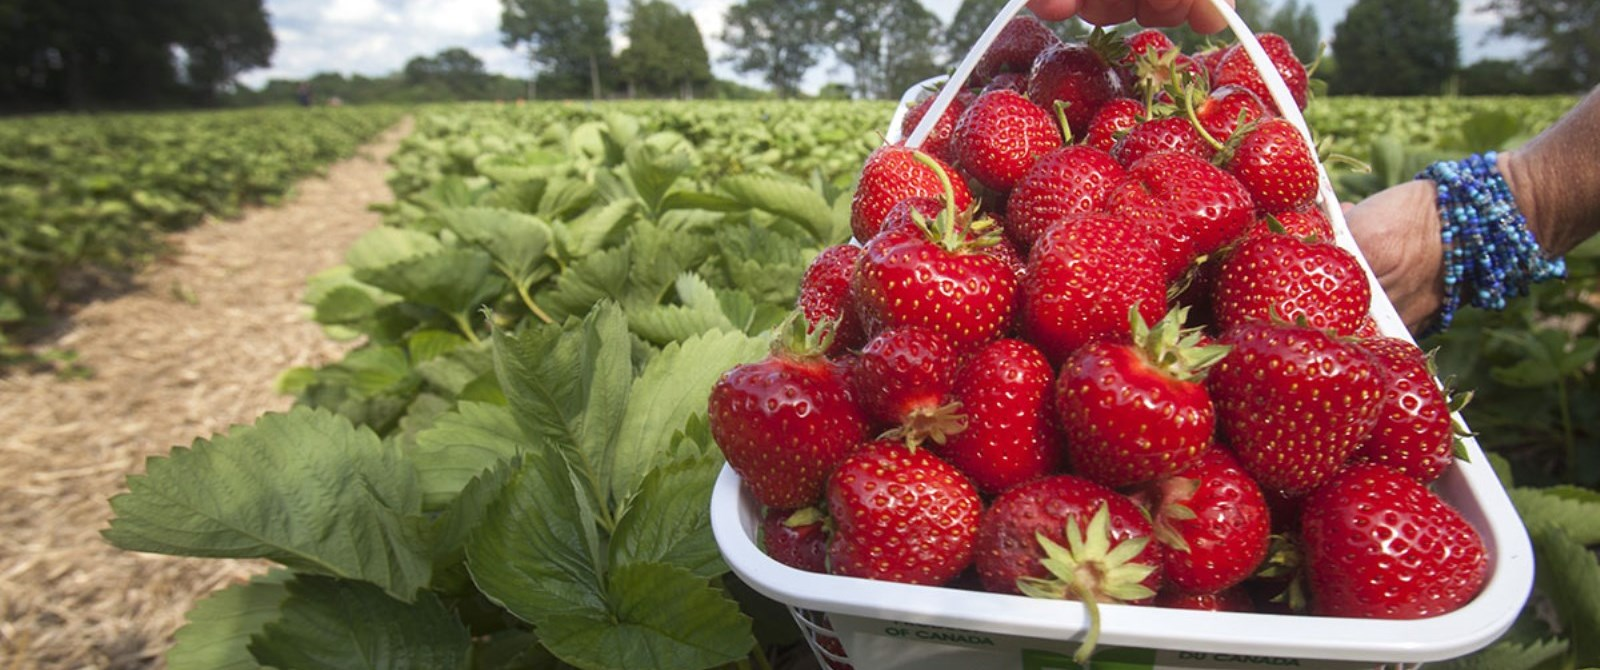 strawberries in a basket in the field